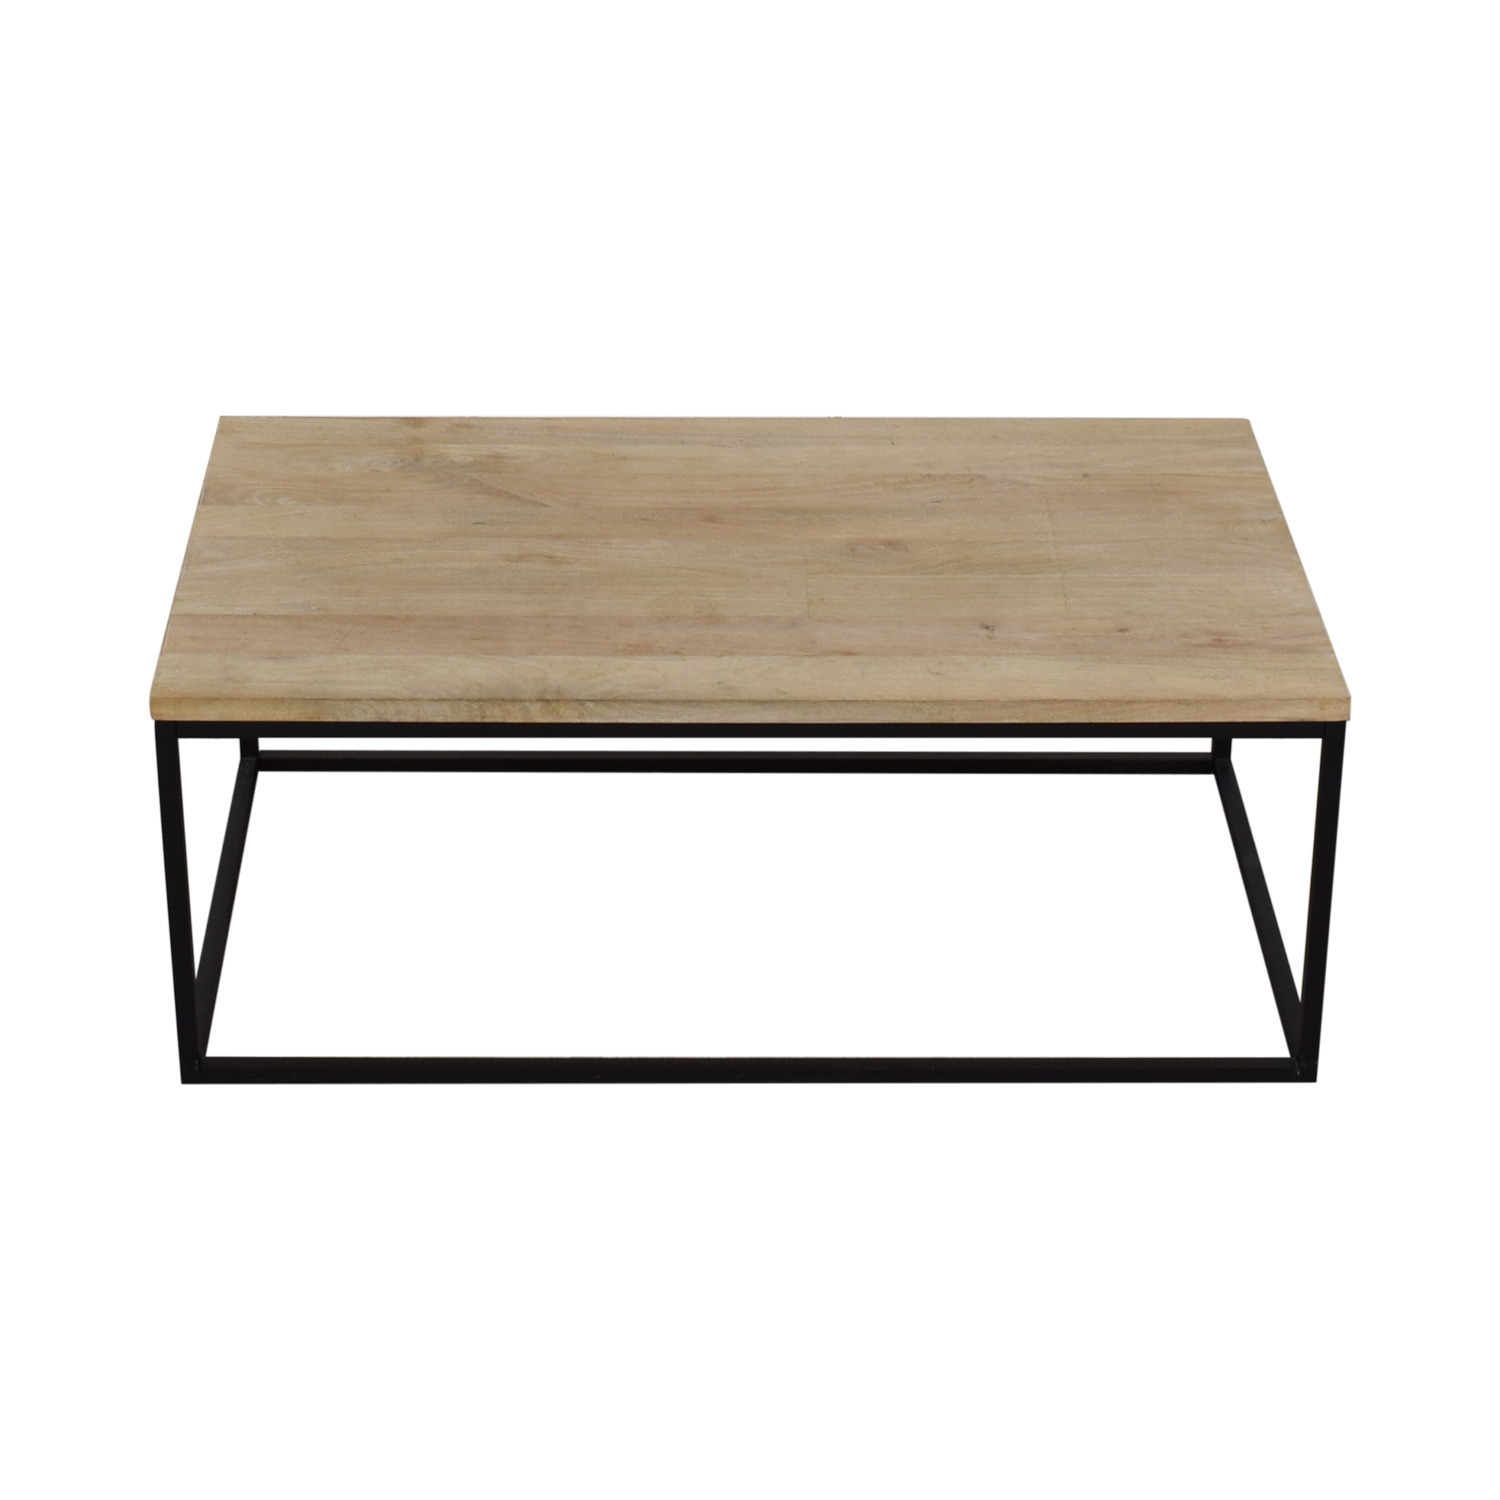 West Elm West Elm Box Frame Coffee Table coupon